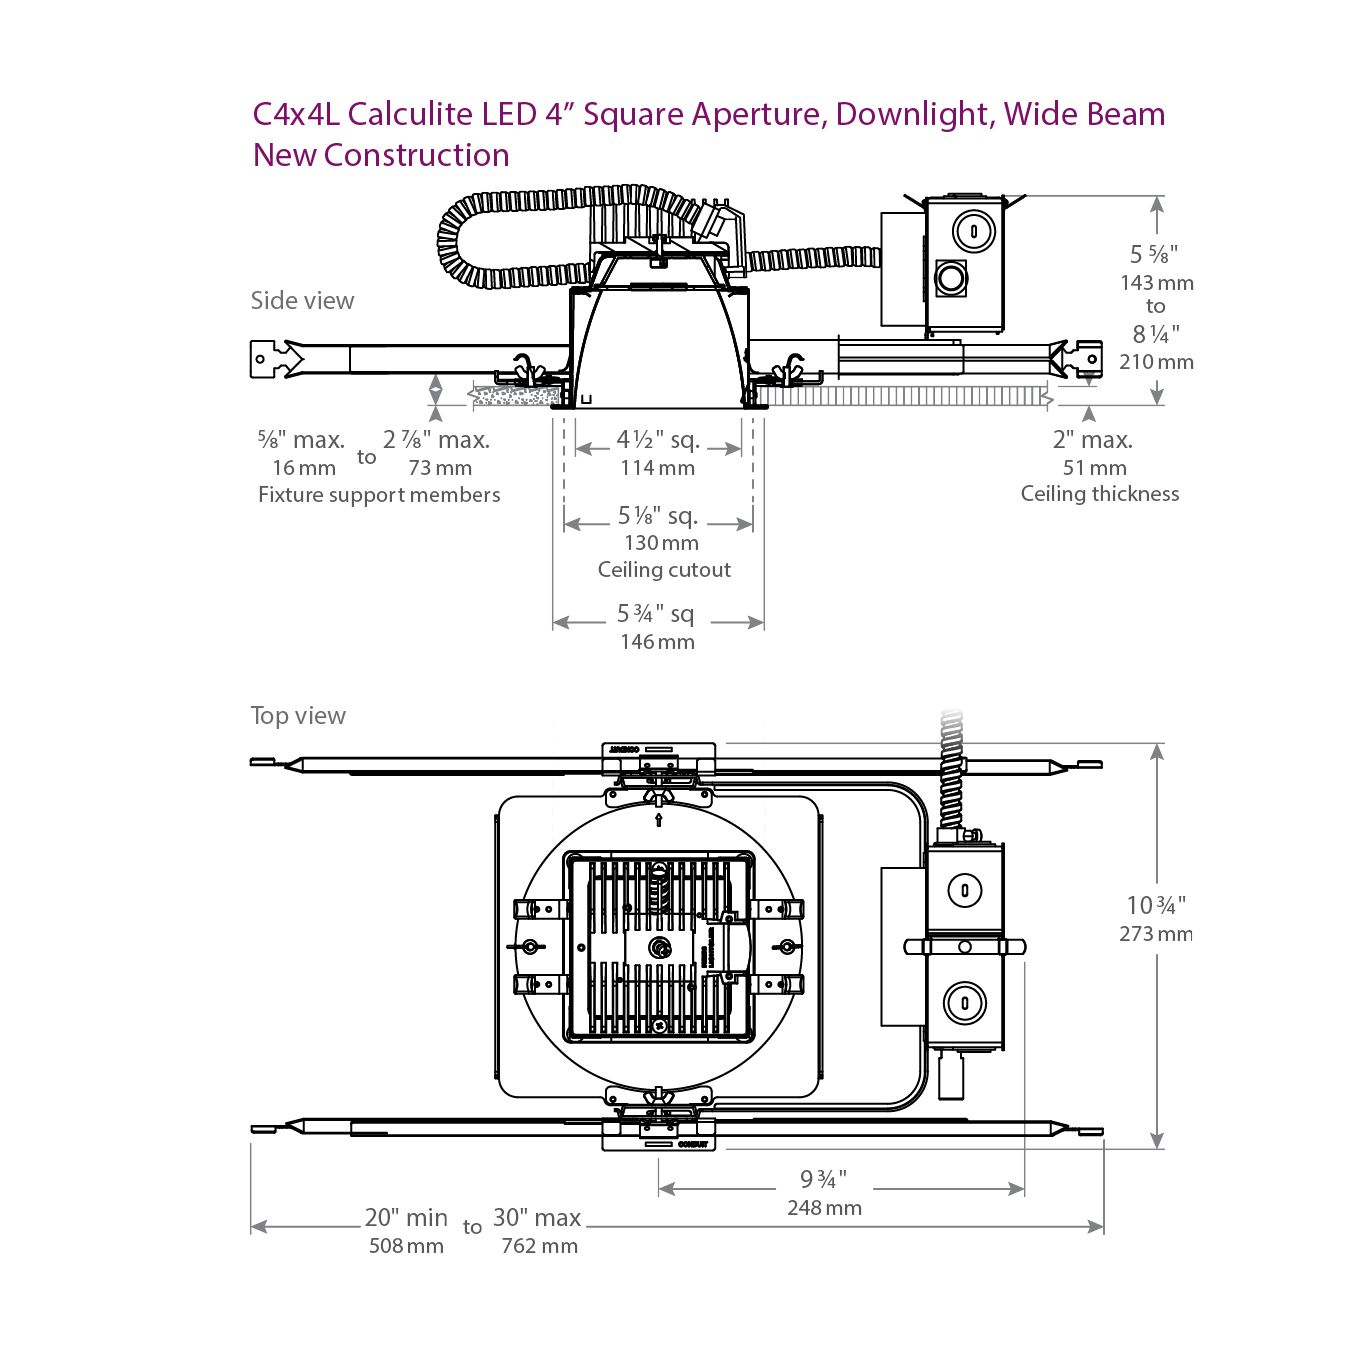 Lightolier 0 10v Dimming Schematic Icon Wire Diagrams New Construction Wiring Diagram Philips C4x4l05 Calculite Led 500 Lumen 4 1 2 Inch X 3